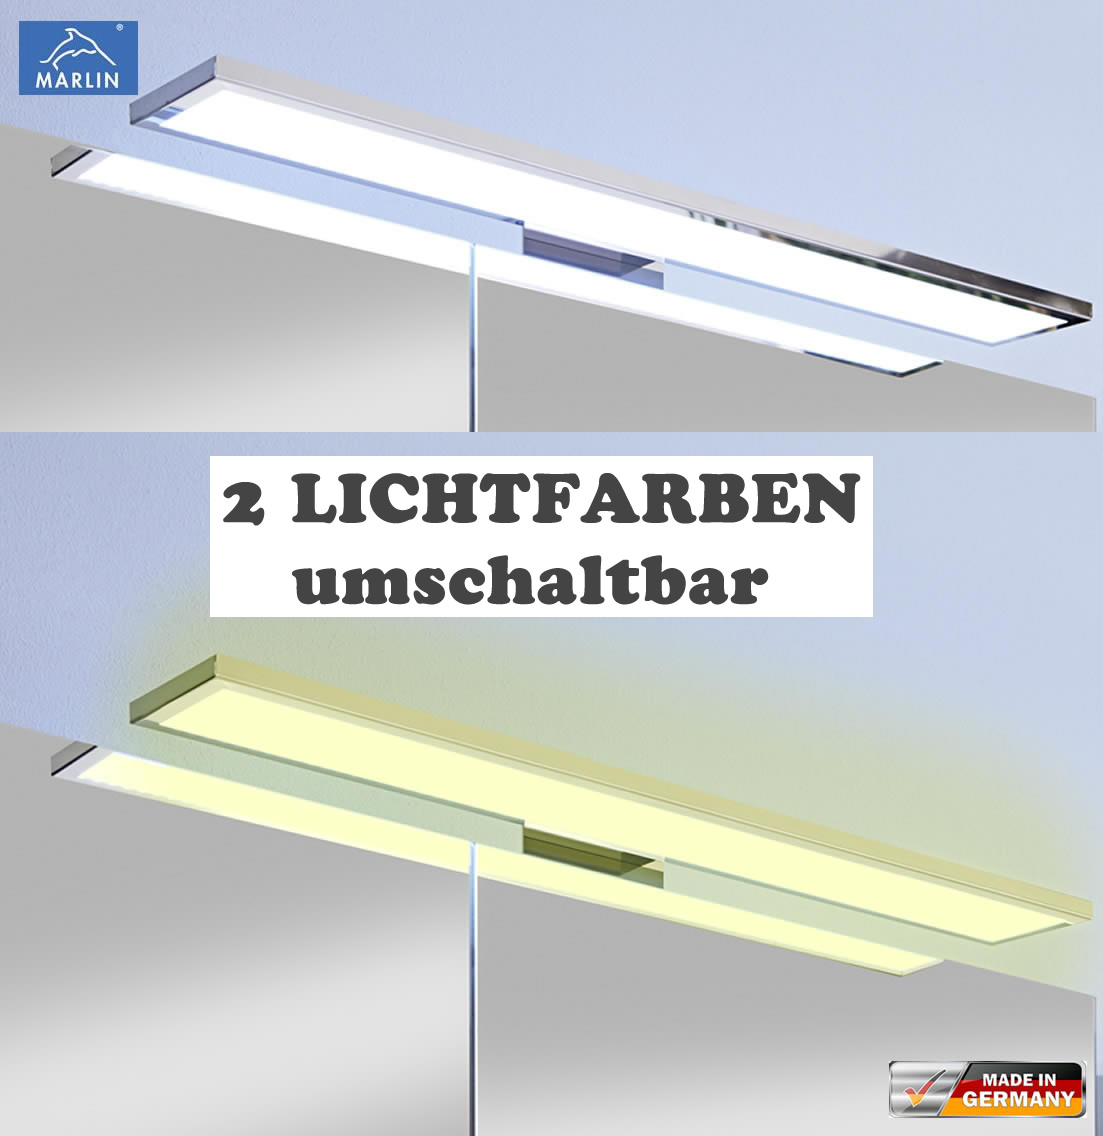 Marlin LED 2 Lichtfarben